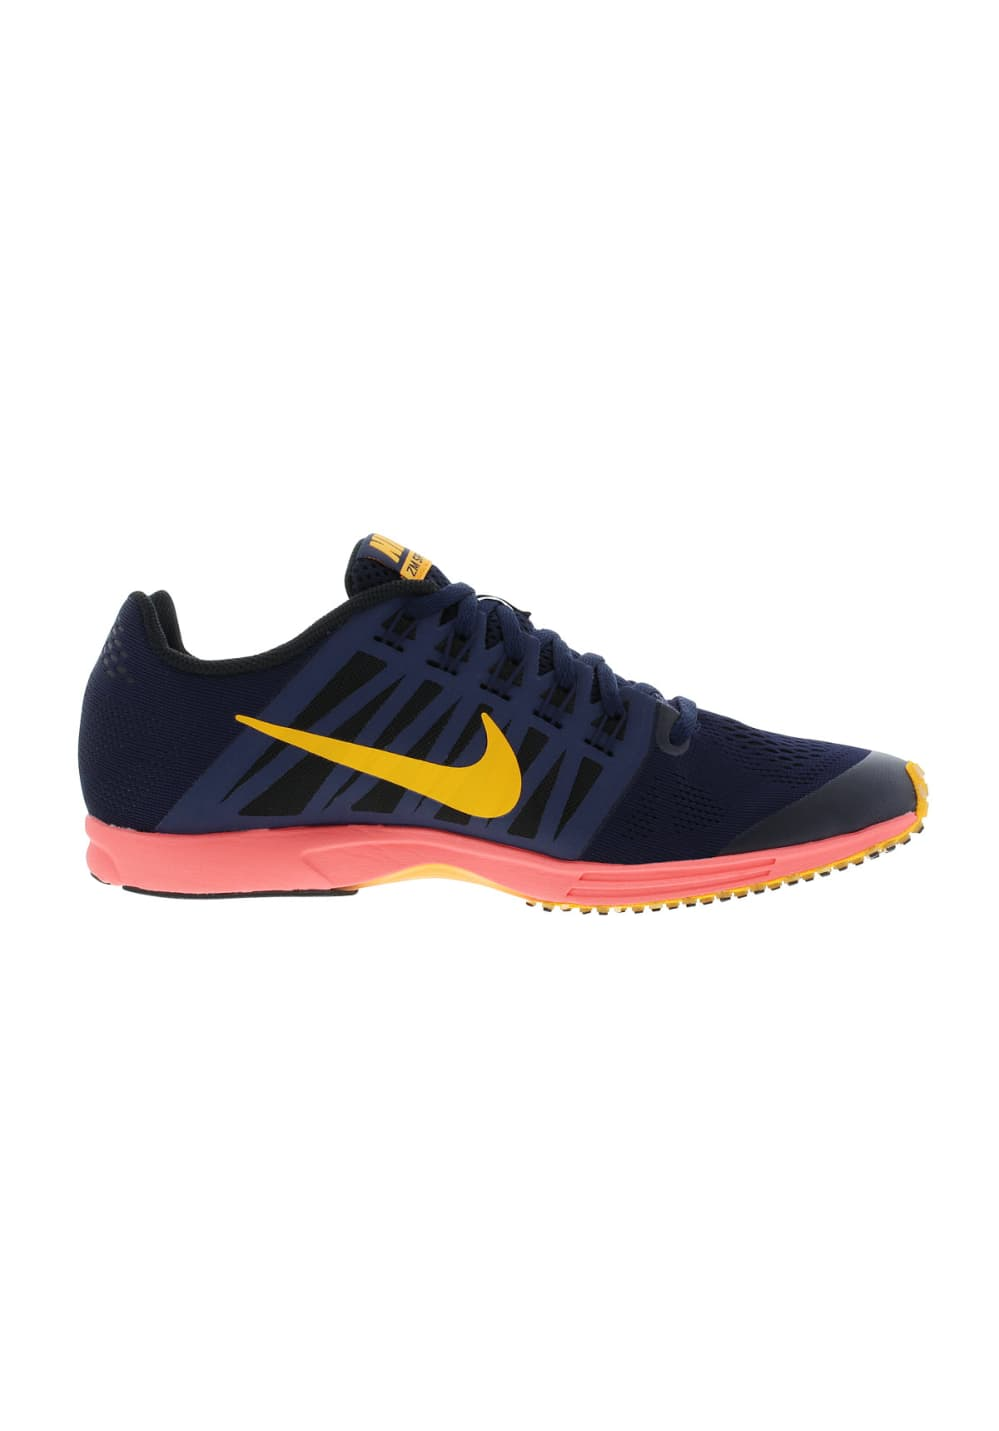 cdfa4e91264a5 Next. -50%. This product is currently out of stock. Nike. Air Zoom Speed  Racer 6 - Running shoes